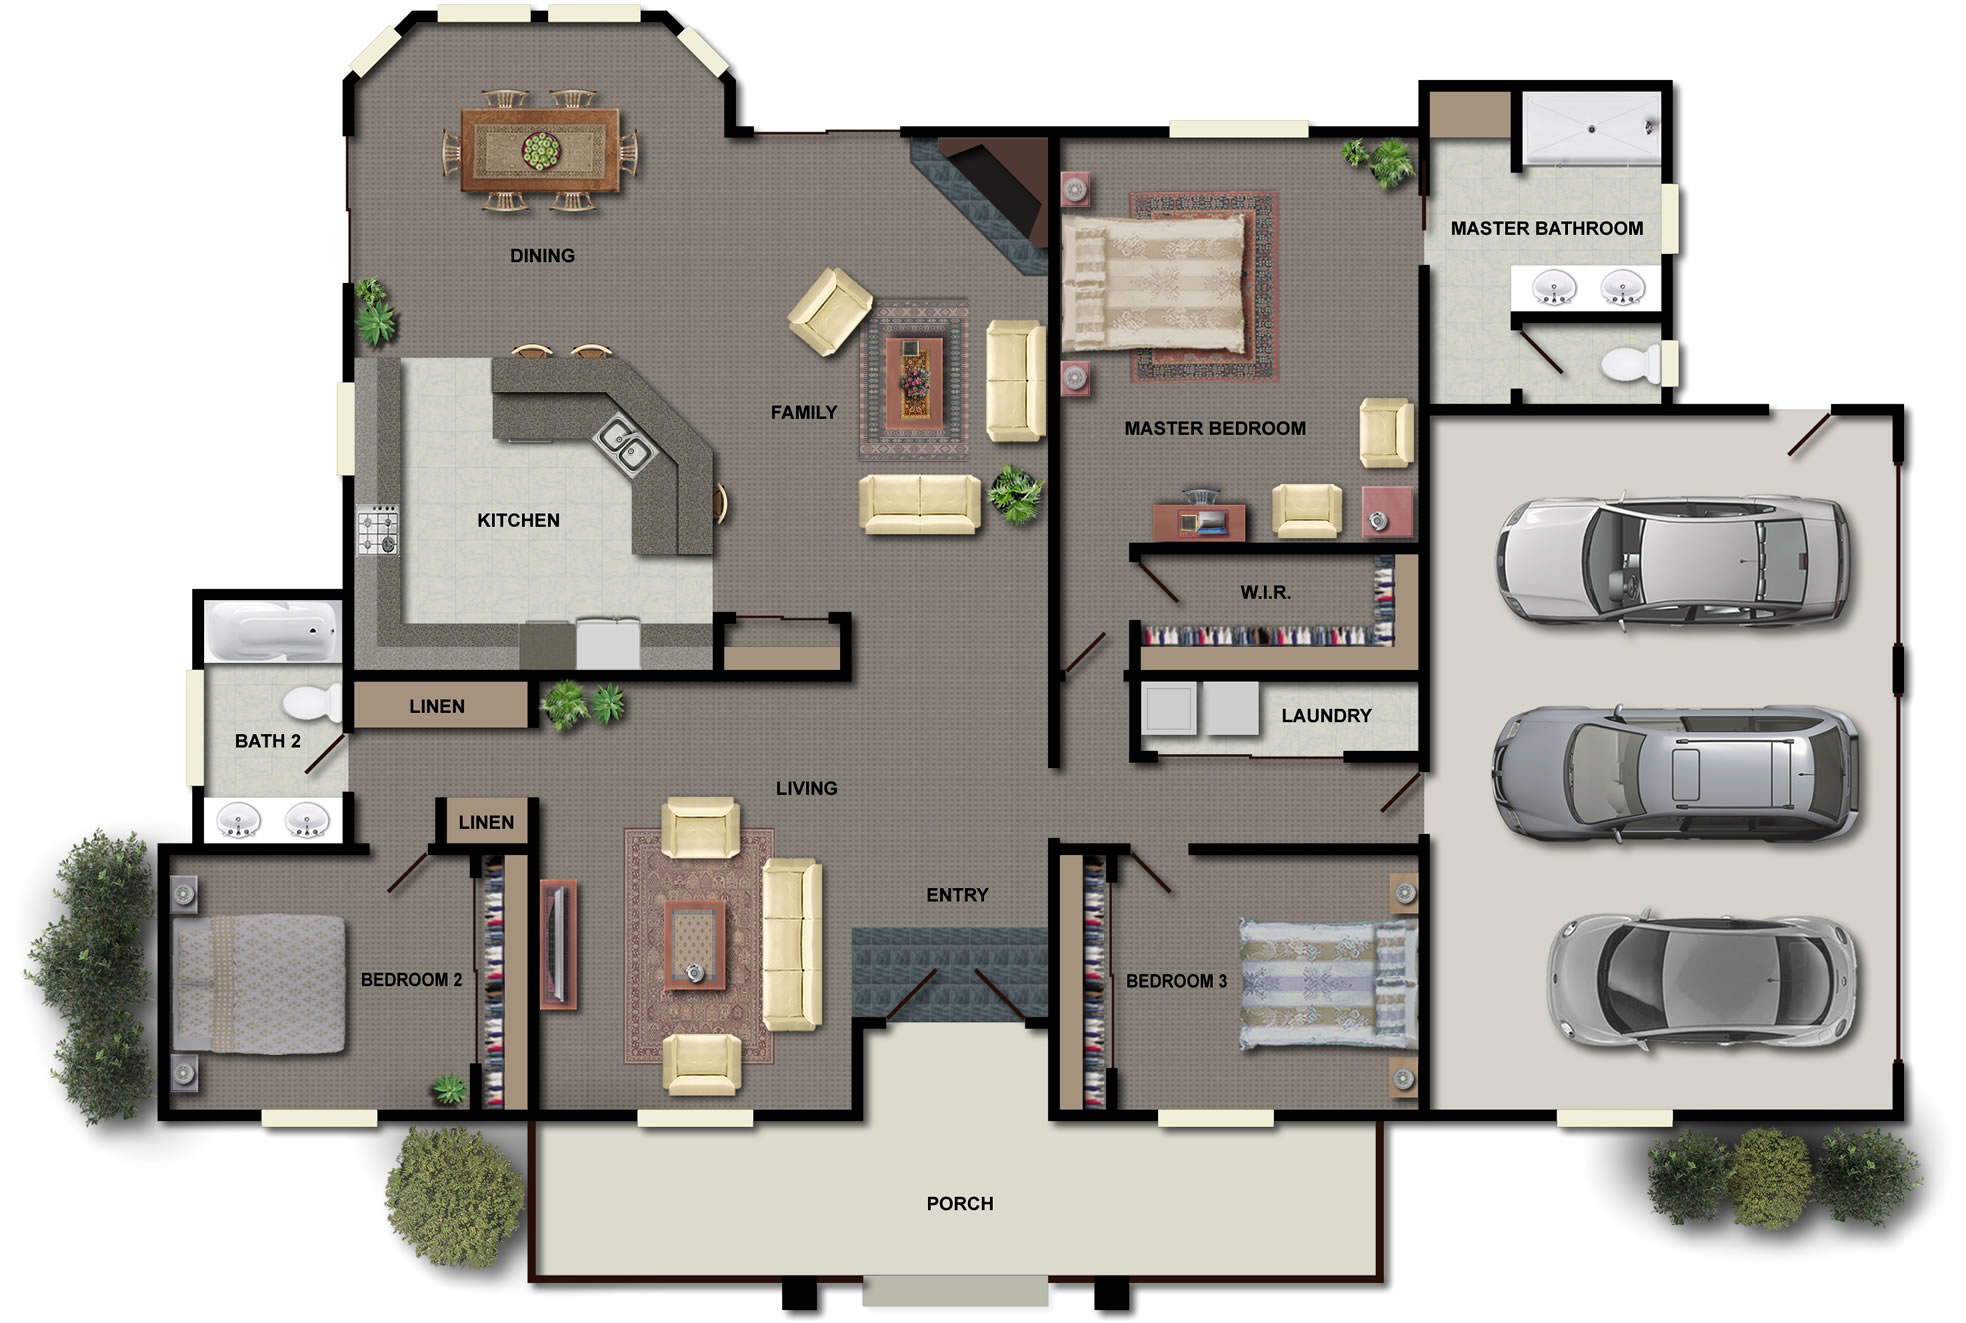 Cozy Big House Floor Plan Ideas Big House Floor Plan on house rooms ideas, garage plan ideas, house model ideas, house parking ideas, house blueprint ideas, house exterior ideas, house building ideas, house furniture ideas, basement floor plans ideas, house fireplace ideas, house layouts ideas, room addition floor plans ideas, garage floor ideas, house garage ideas, hotel plan ideas, studio plan ideas, house floor plans with hidden rooms, house foundation ideas, office plan ideas, house style ideas,